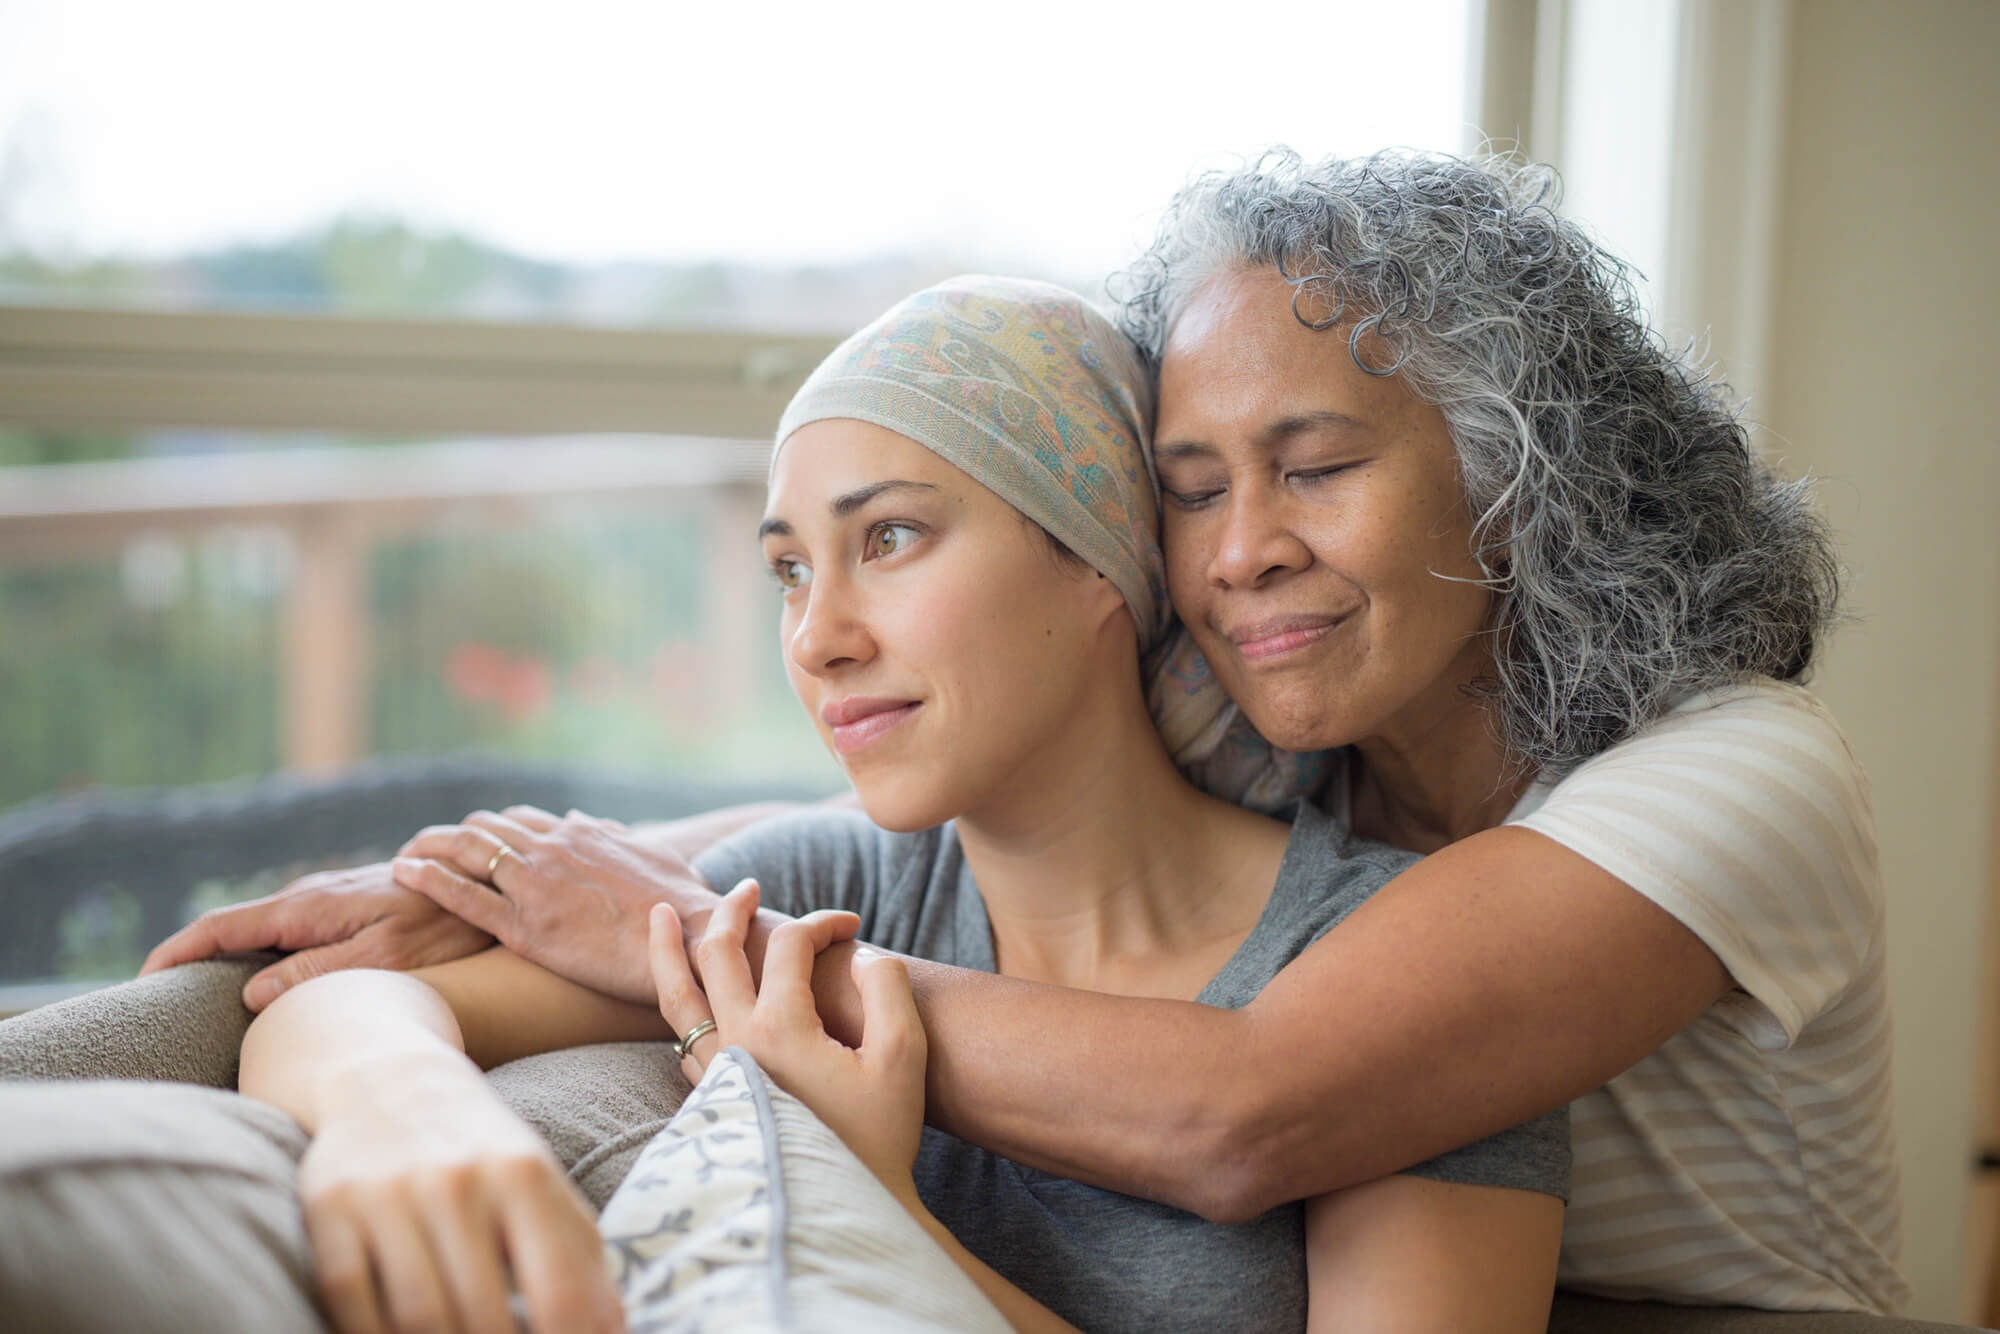 Shifting Dynamics of Social Support After a Cancer Diagnosis